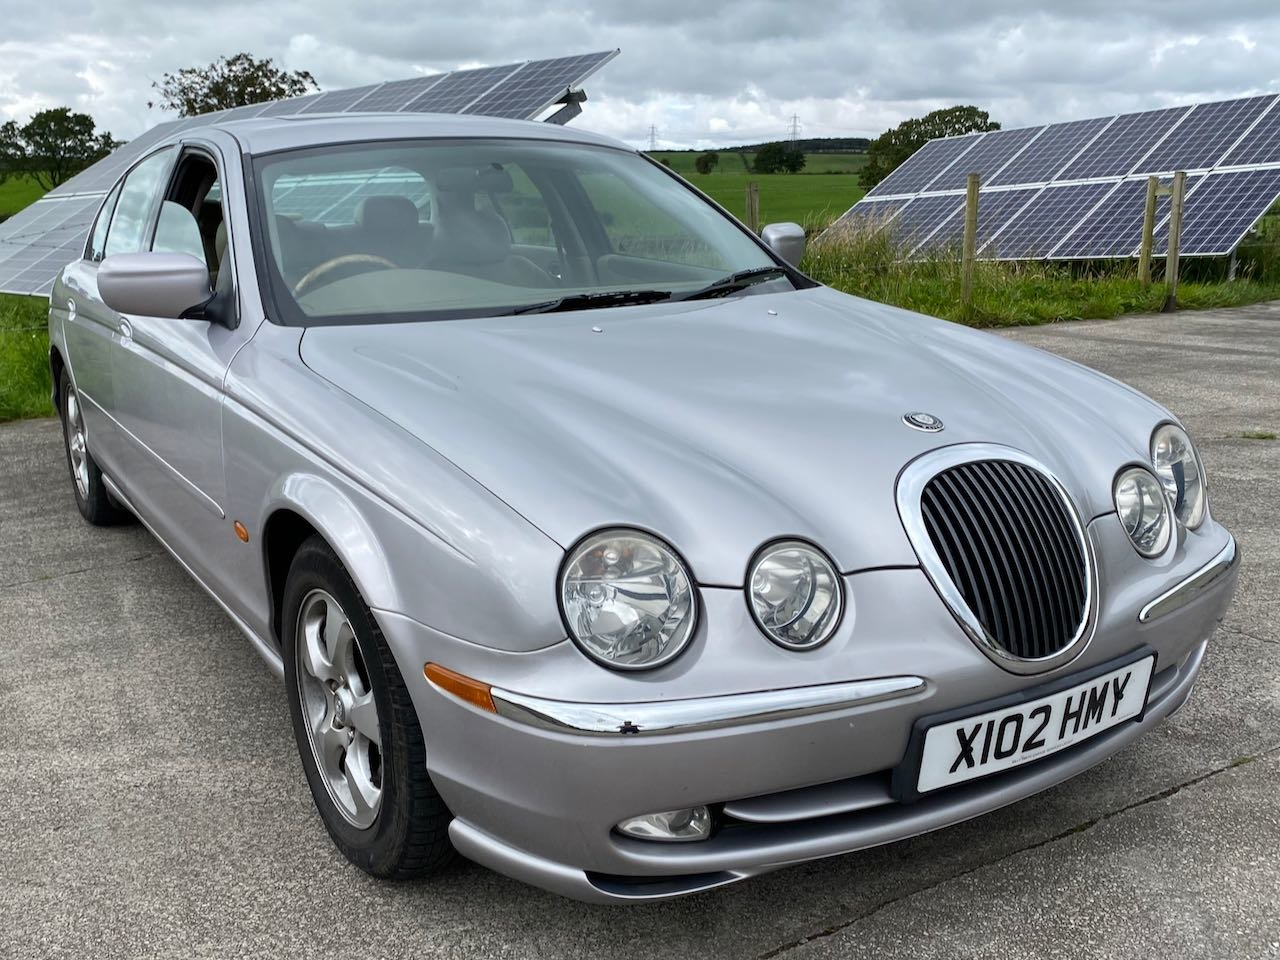 2000 Immaculate, low milage, 3 litre S-Type SOLD (picture 1 of 6)